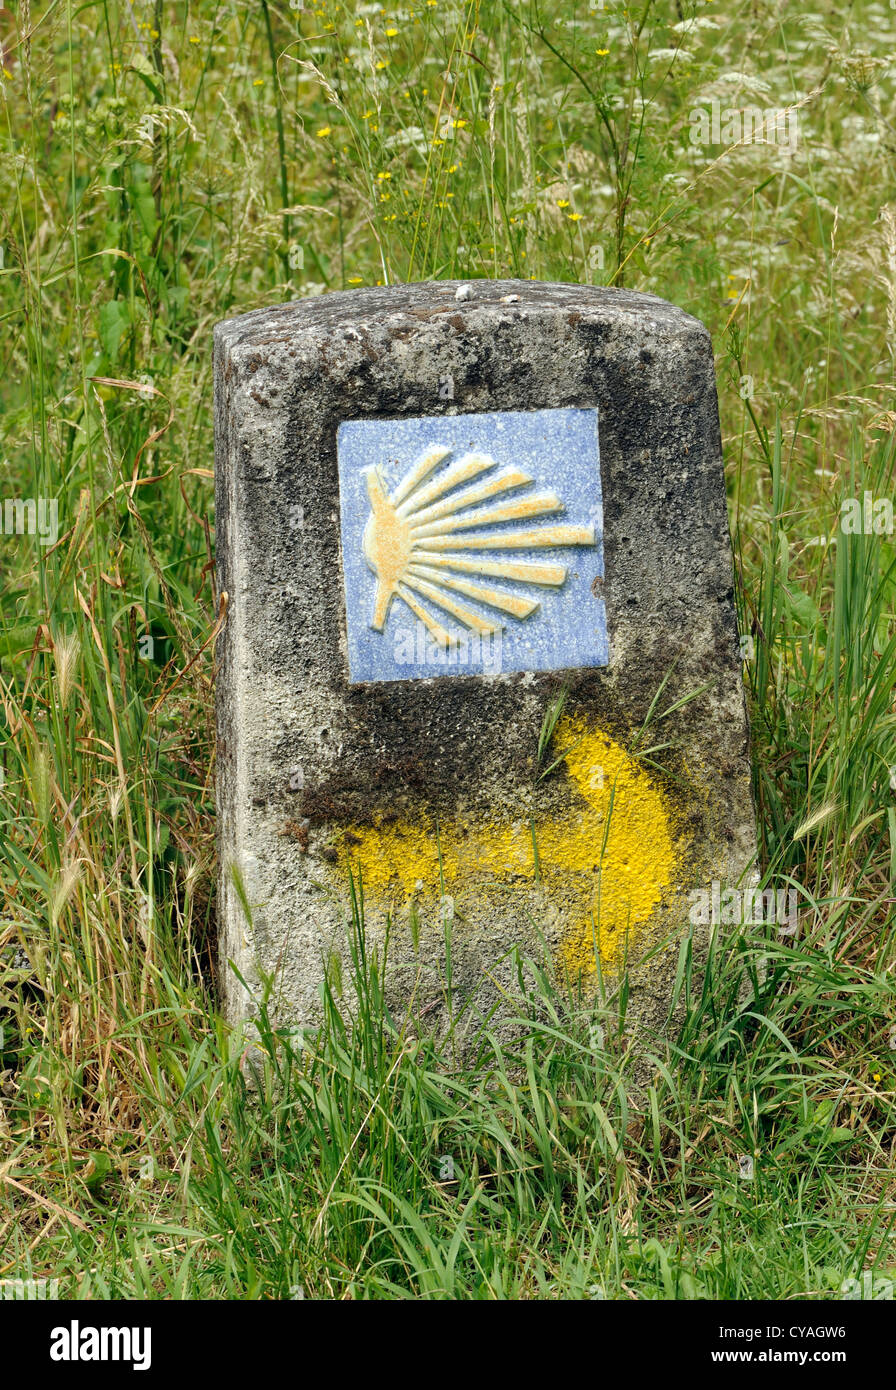 Scallop shell symbol marking the pilgrims path to santiago de stock scallop shell symbol marking the pilgrims path to santiago de compostela herrerias leon galicia spain biocorpaavc Image collections